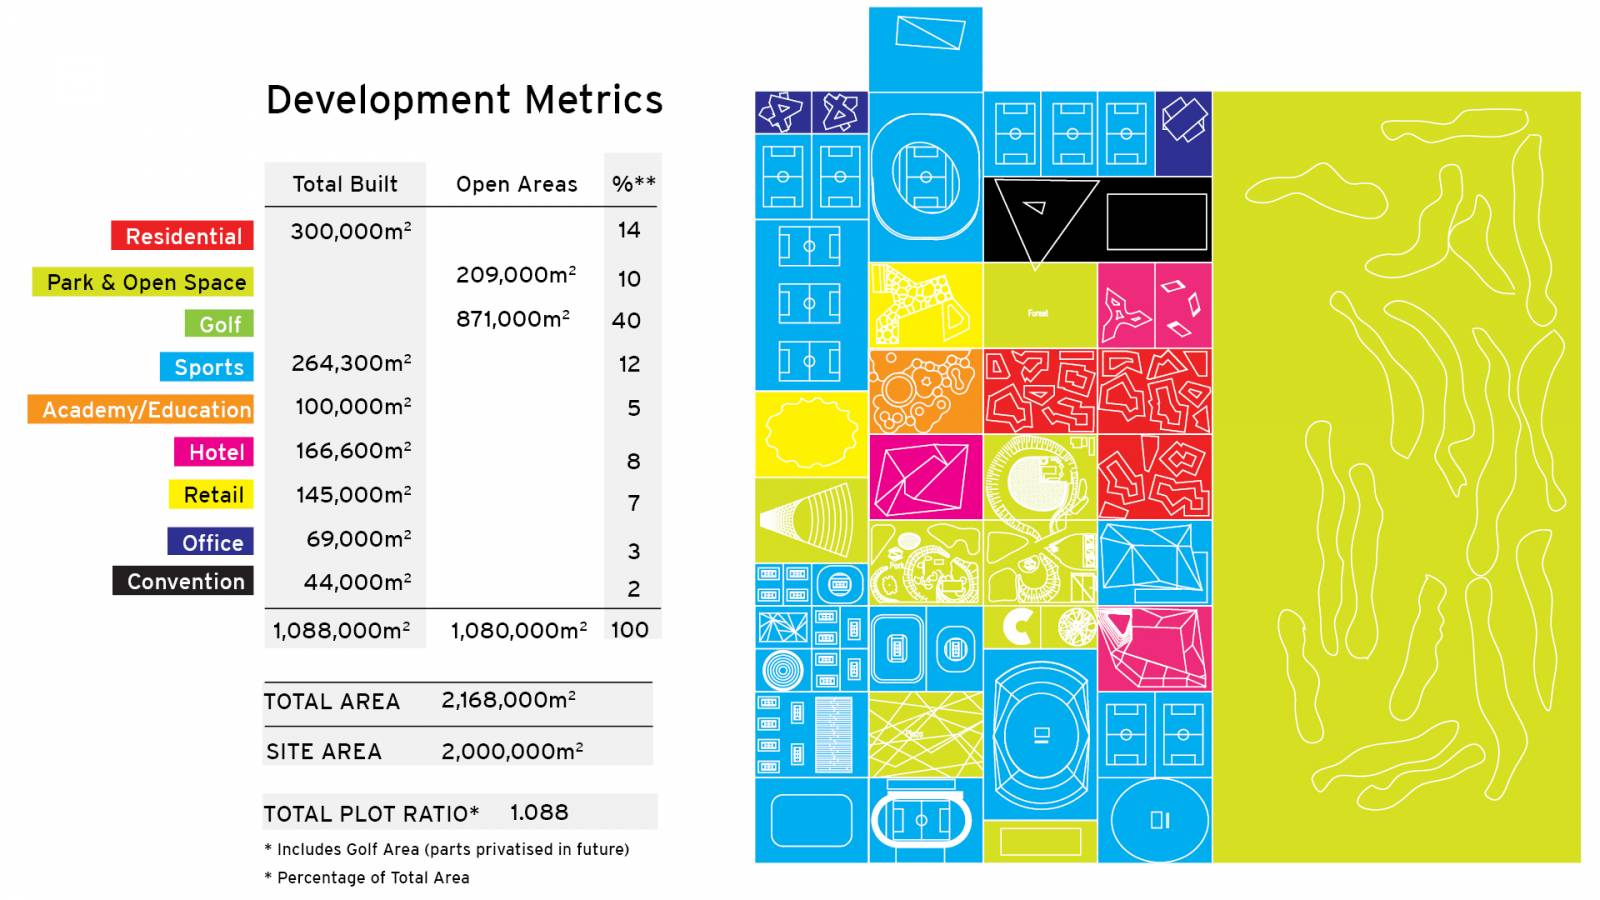 MASTERPLAN METRICS - India Sport City - SPOL Architects